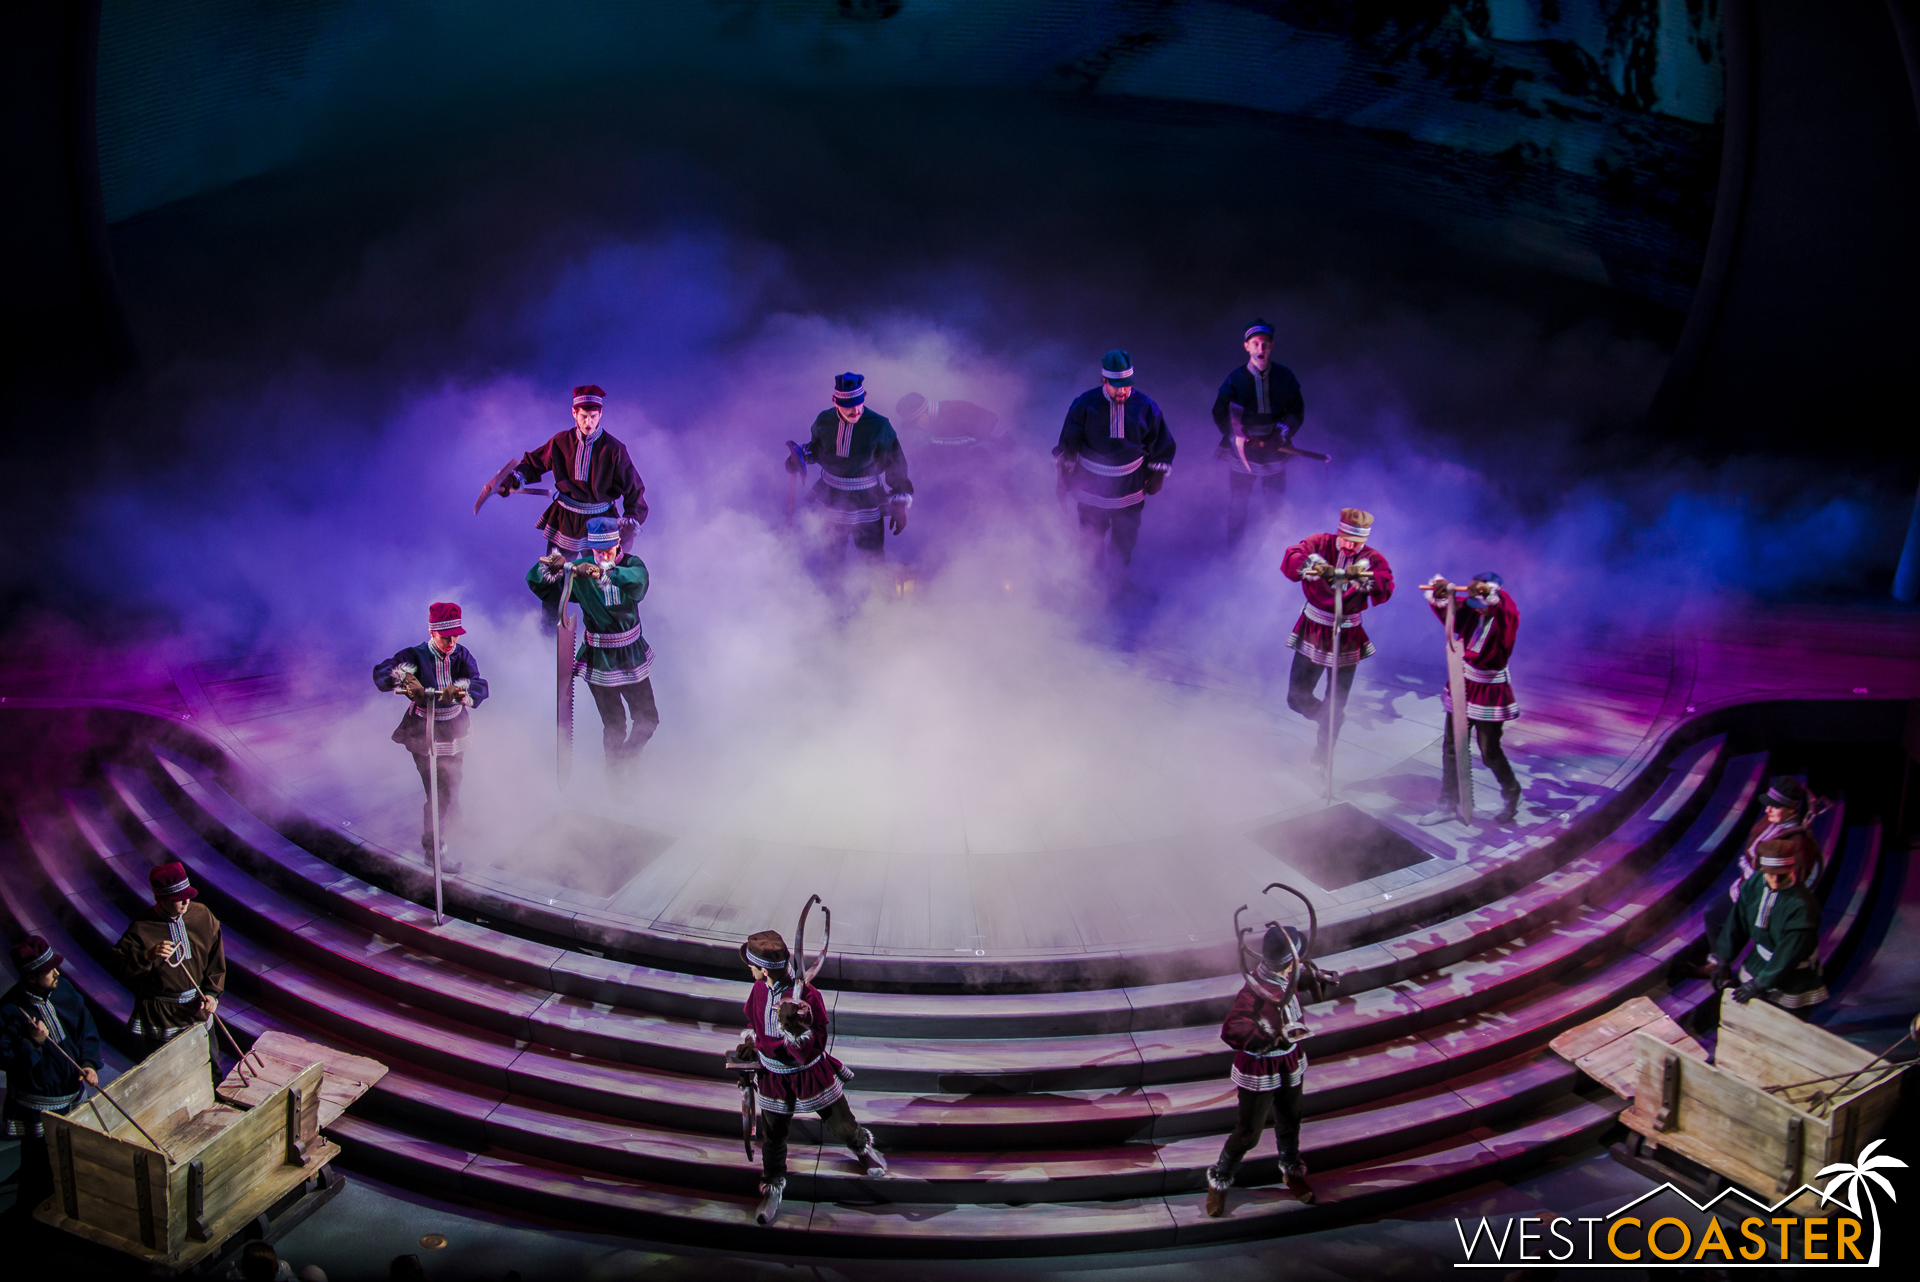 Lets dive into the show. First, the ice harvesters create smoke with the intensity of their ice cutting.